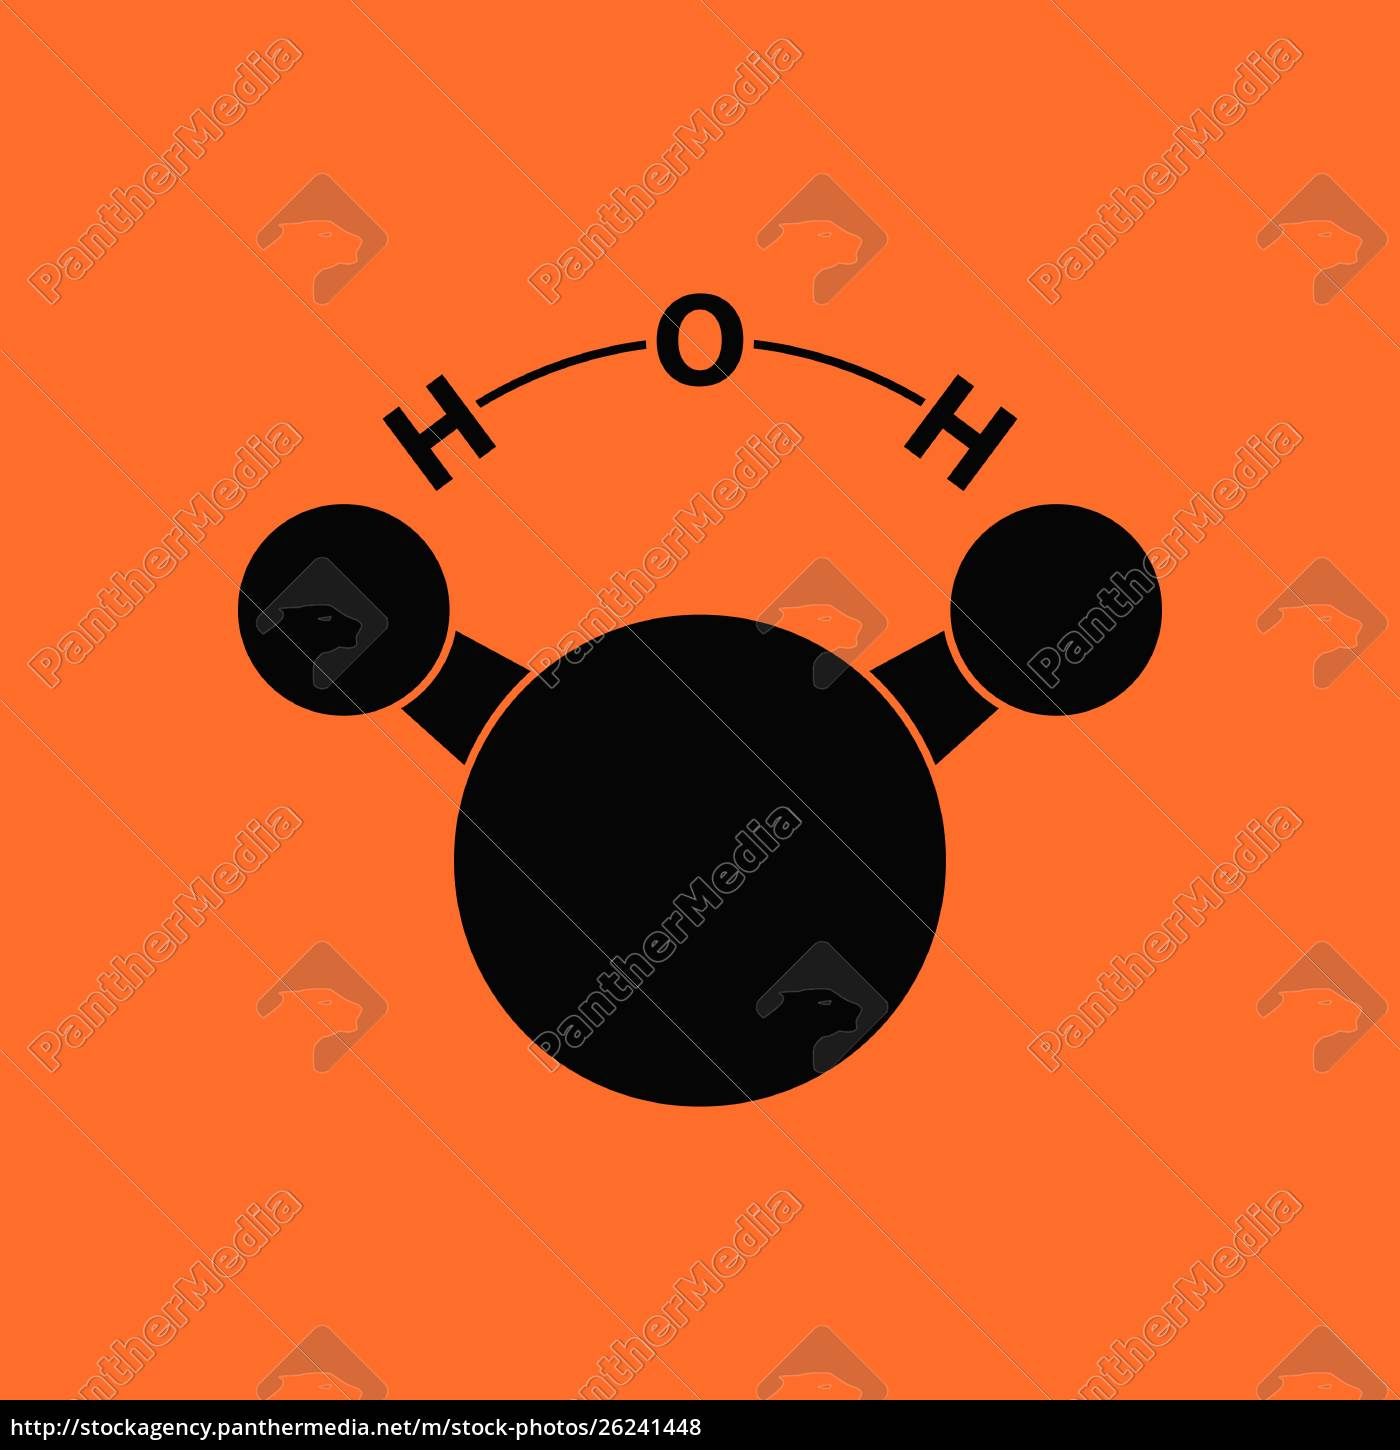 icon, of, chemical, molecule, water., orange - 26241448